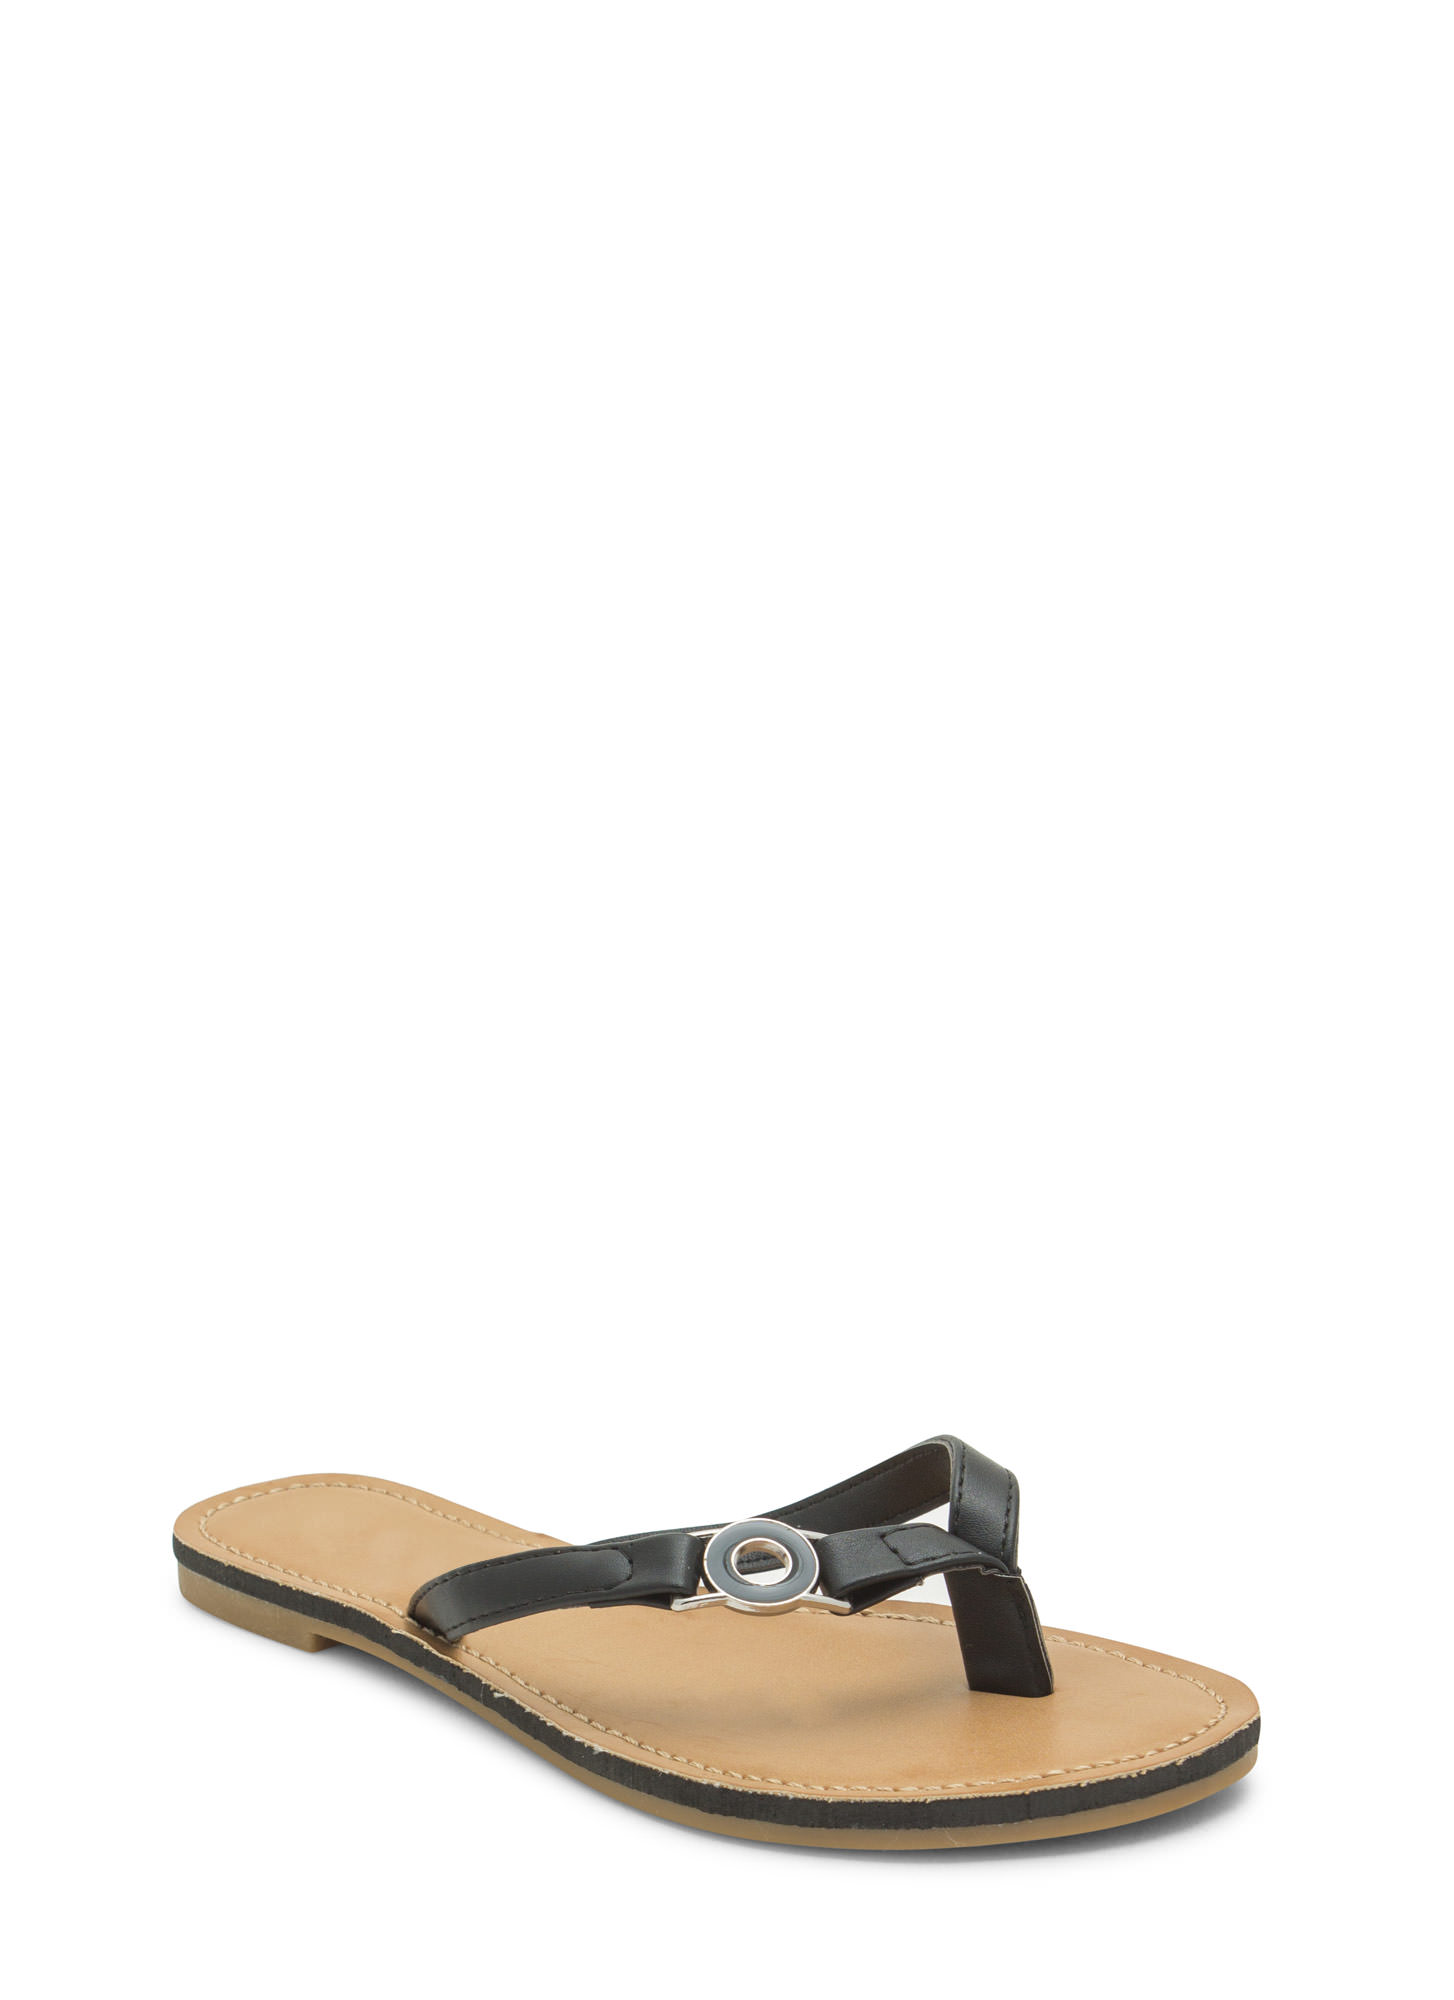 Circle Of Chic Faux Leather Thong Sandals BLACK